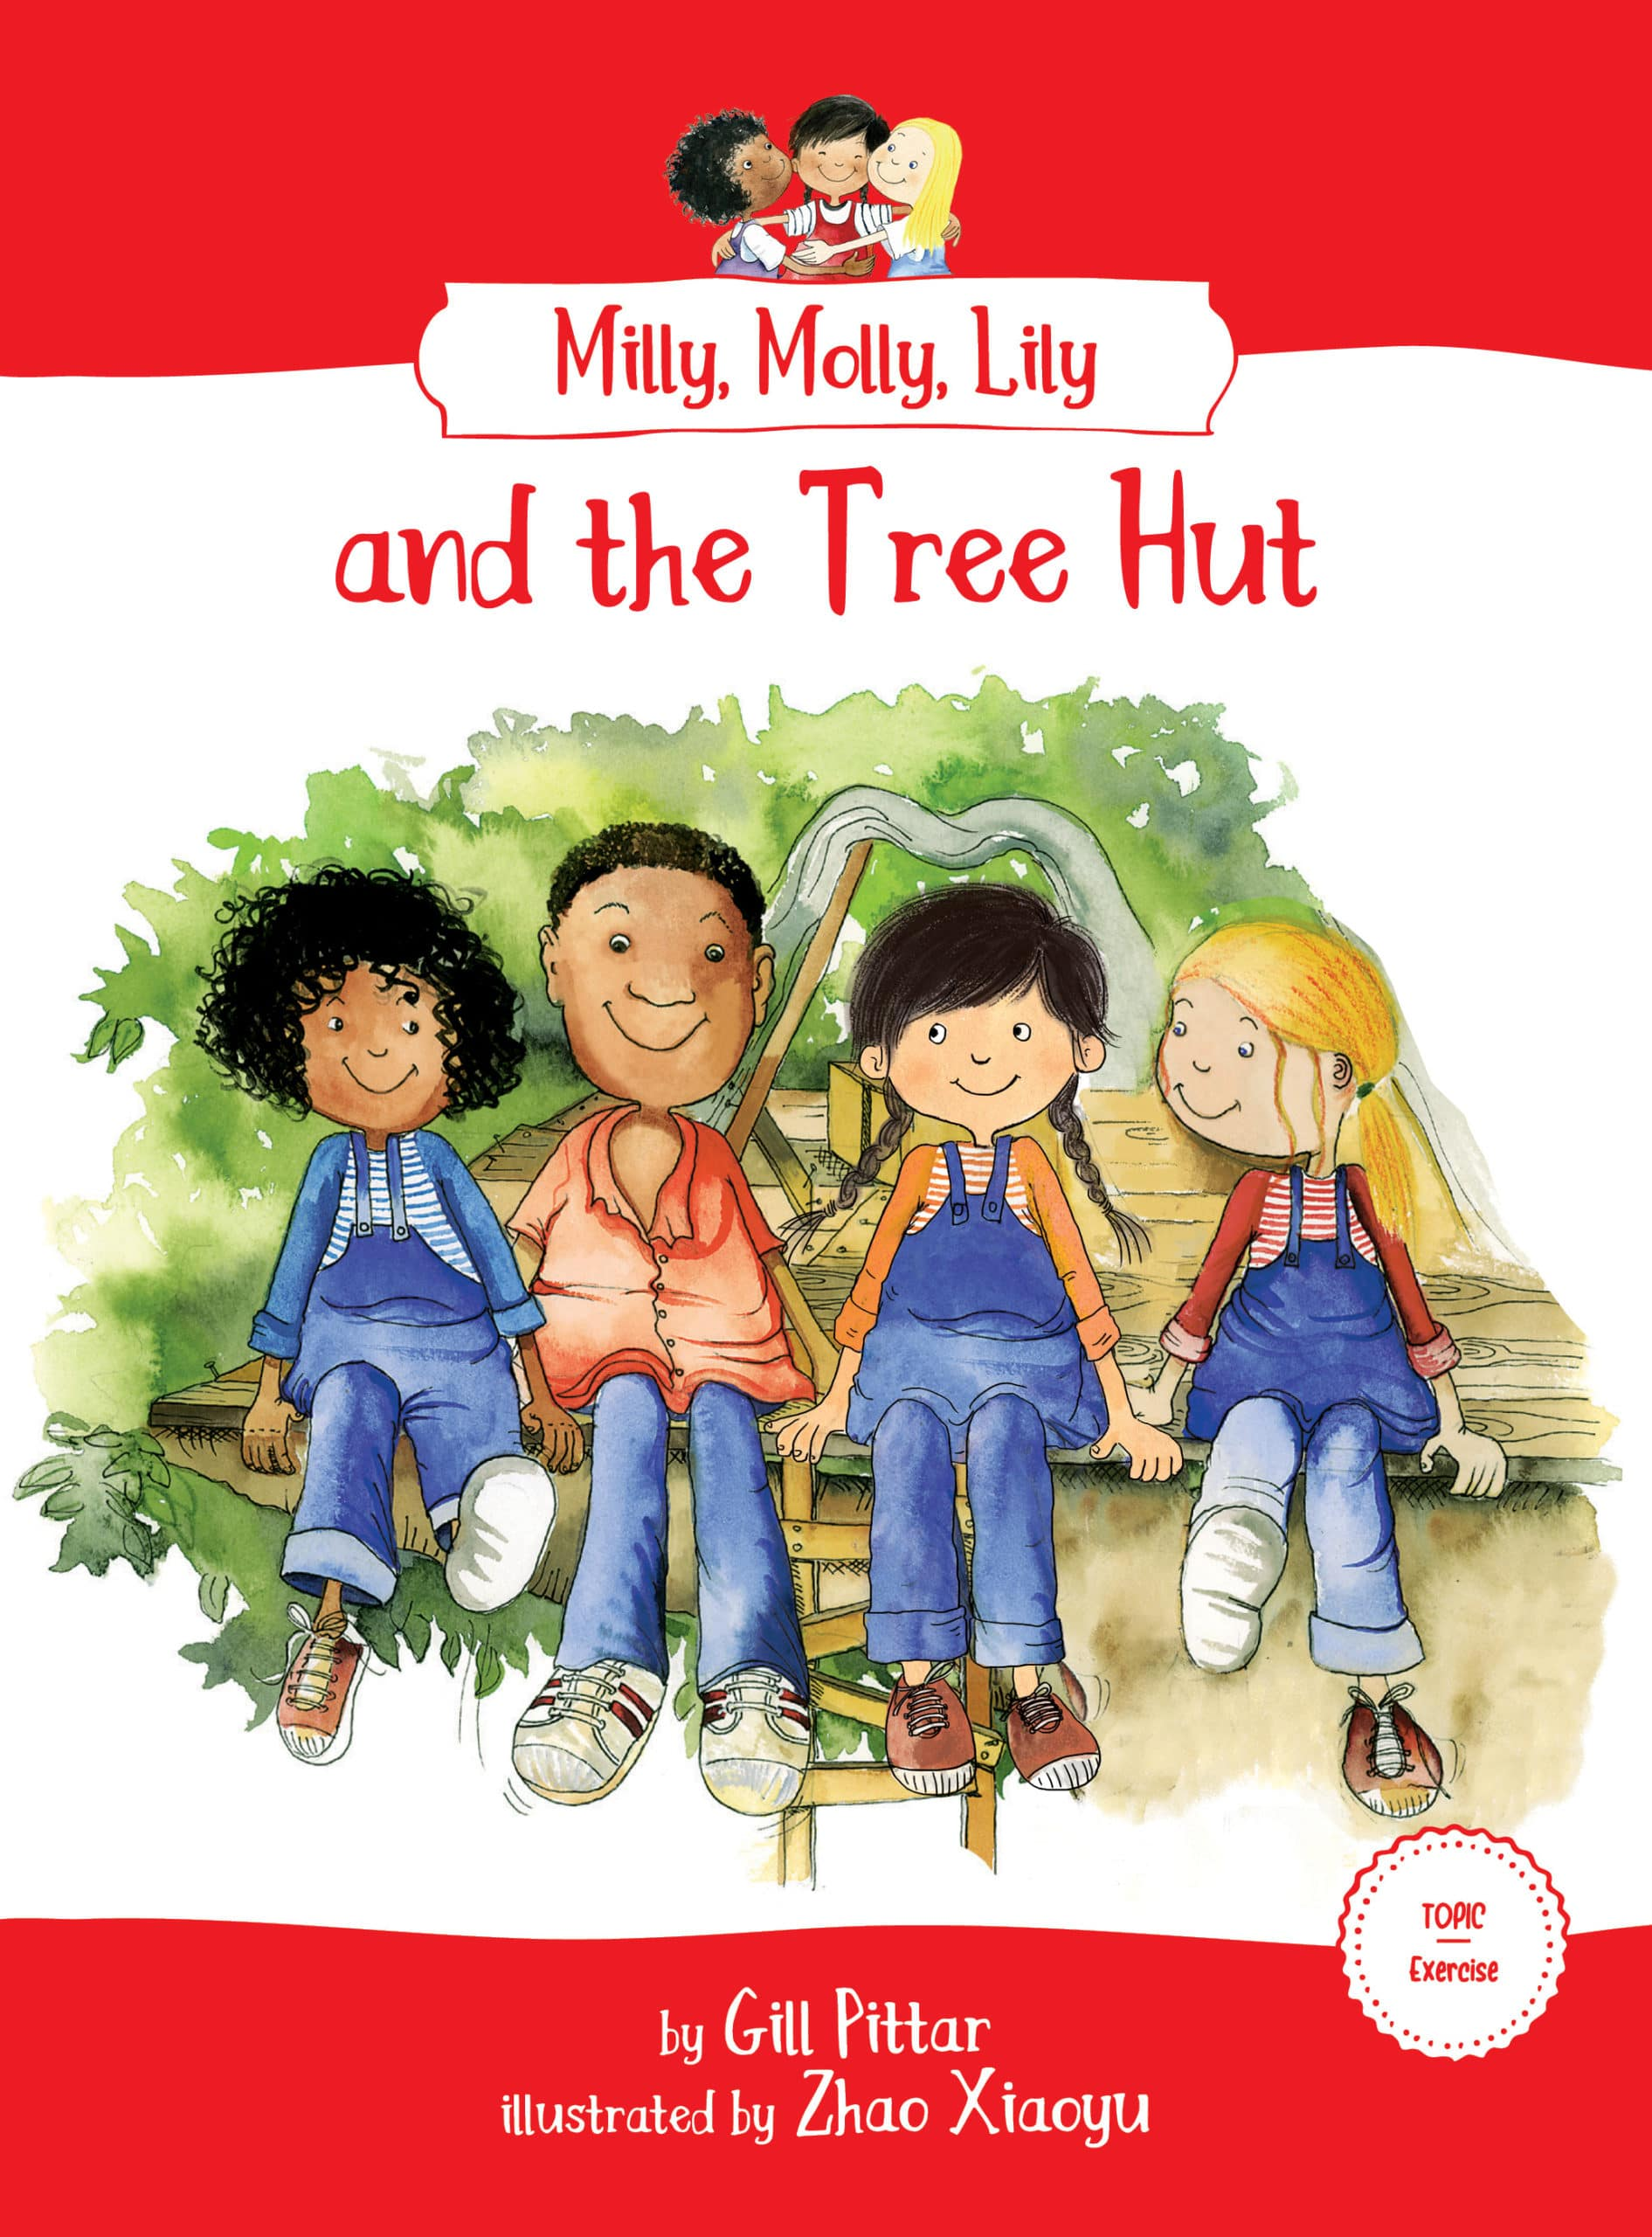 Milly, Molly, Lily and the Tree Hut book cover